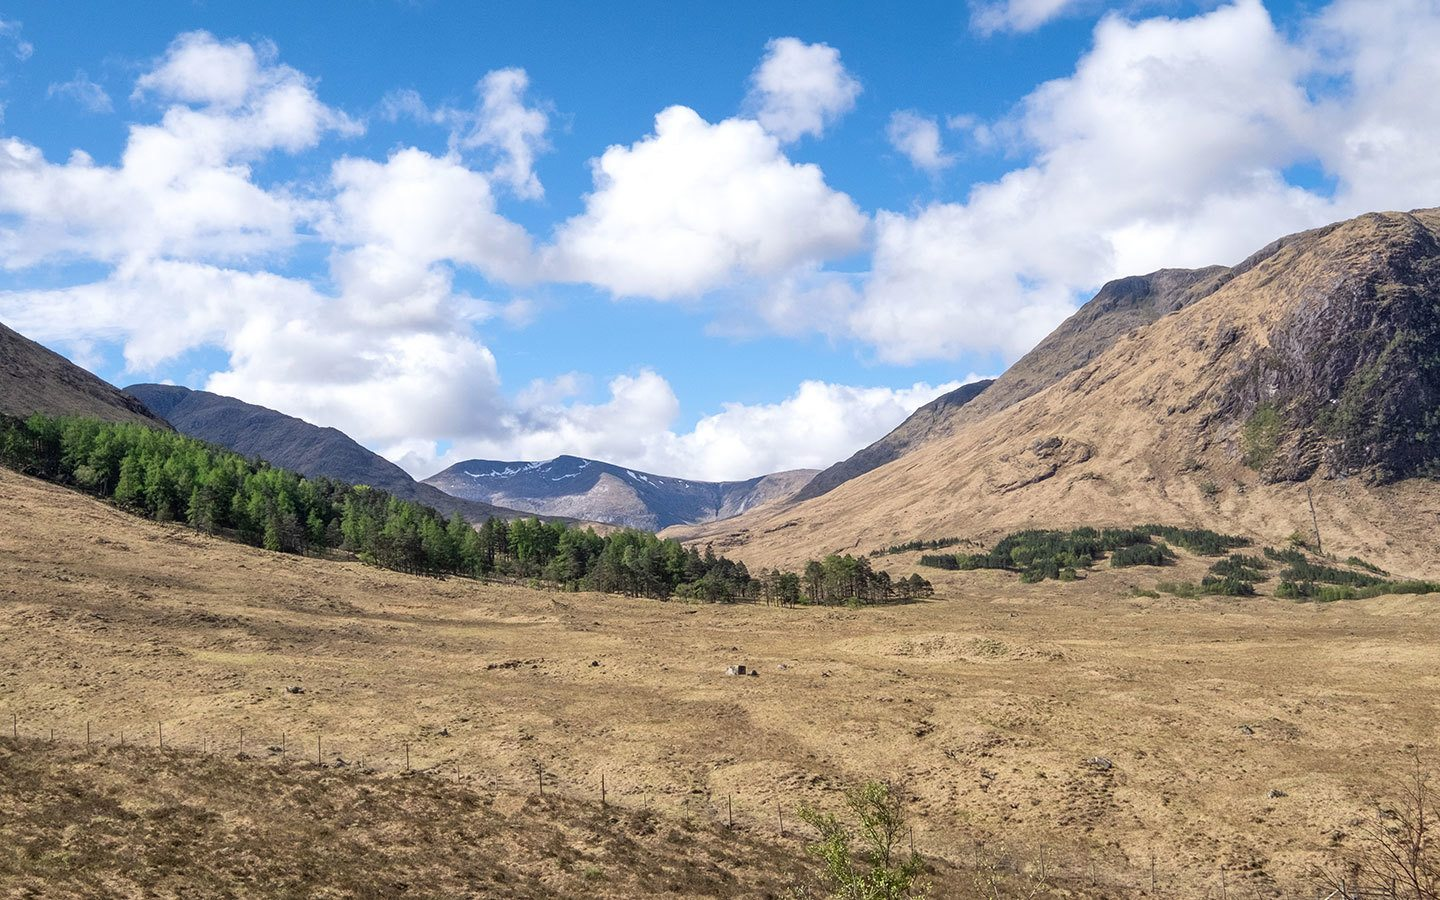 Views along the Glen Etive road in the Scottish Highlands